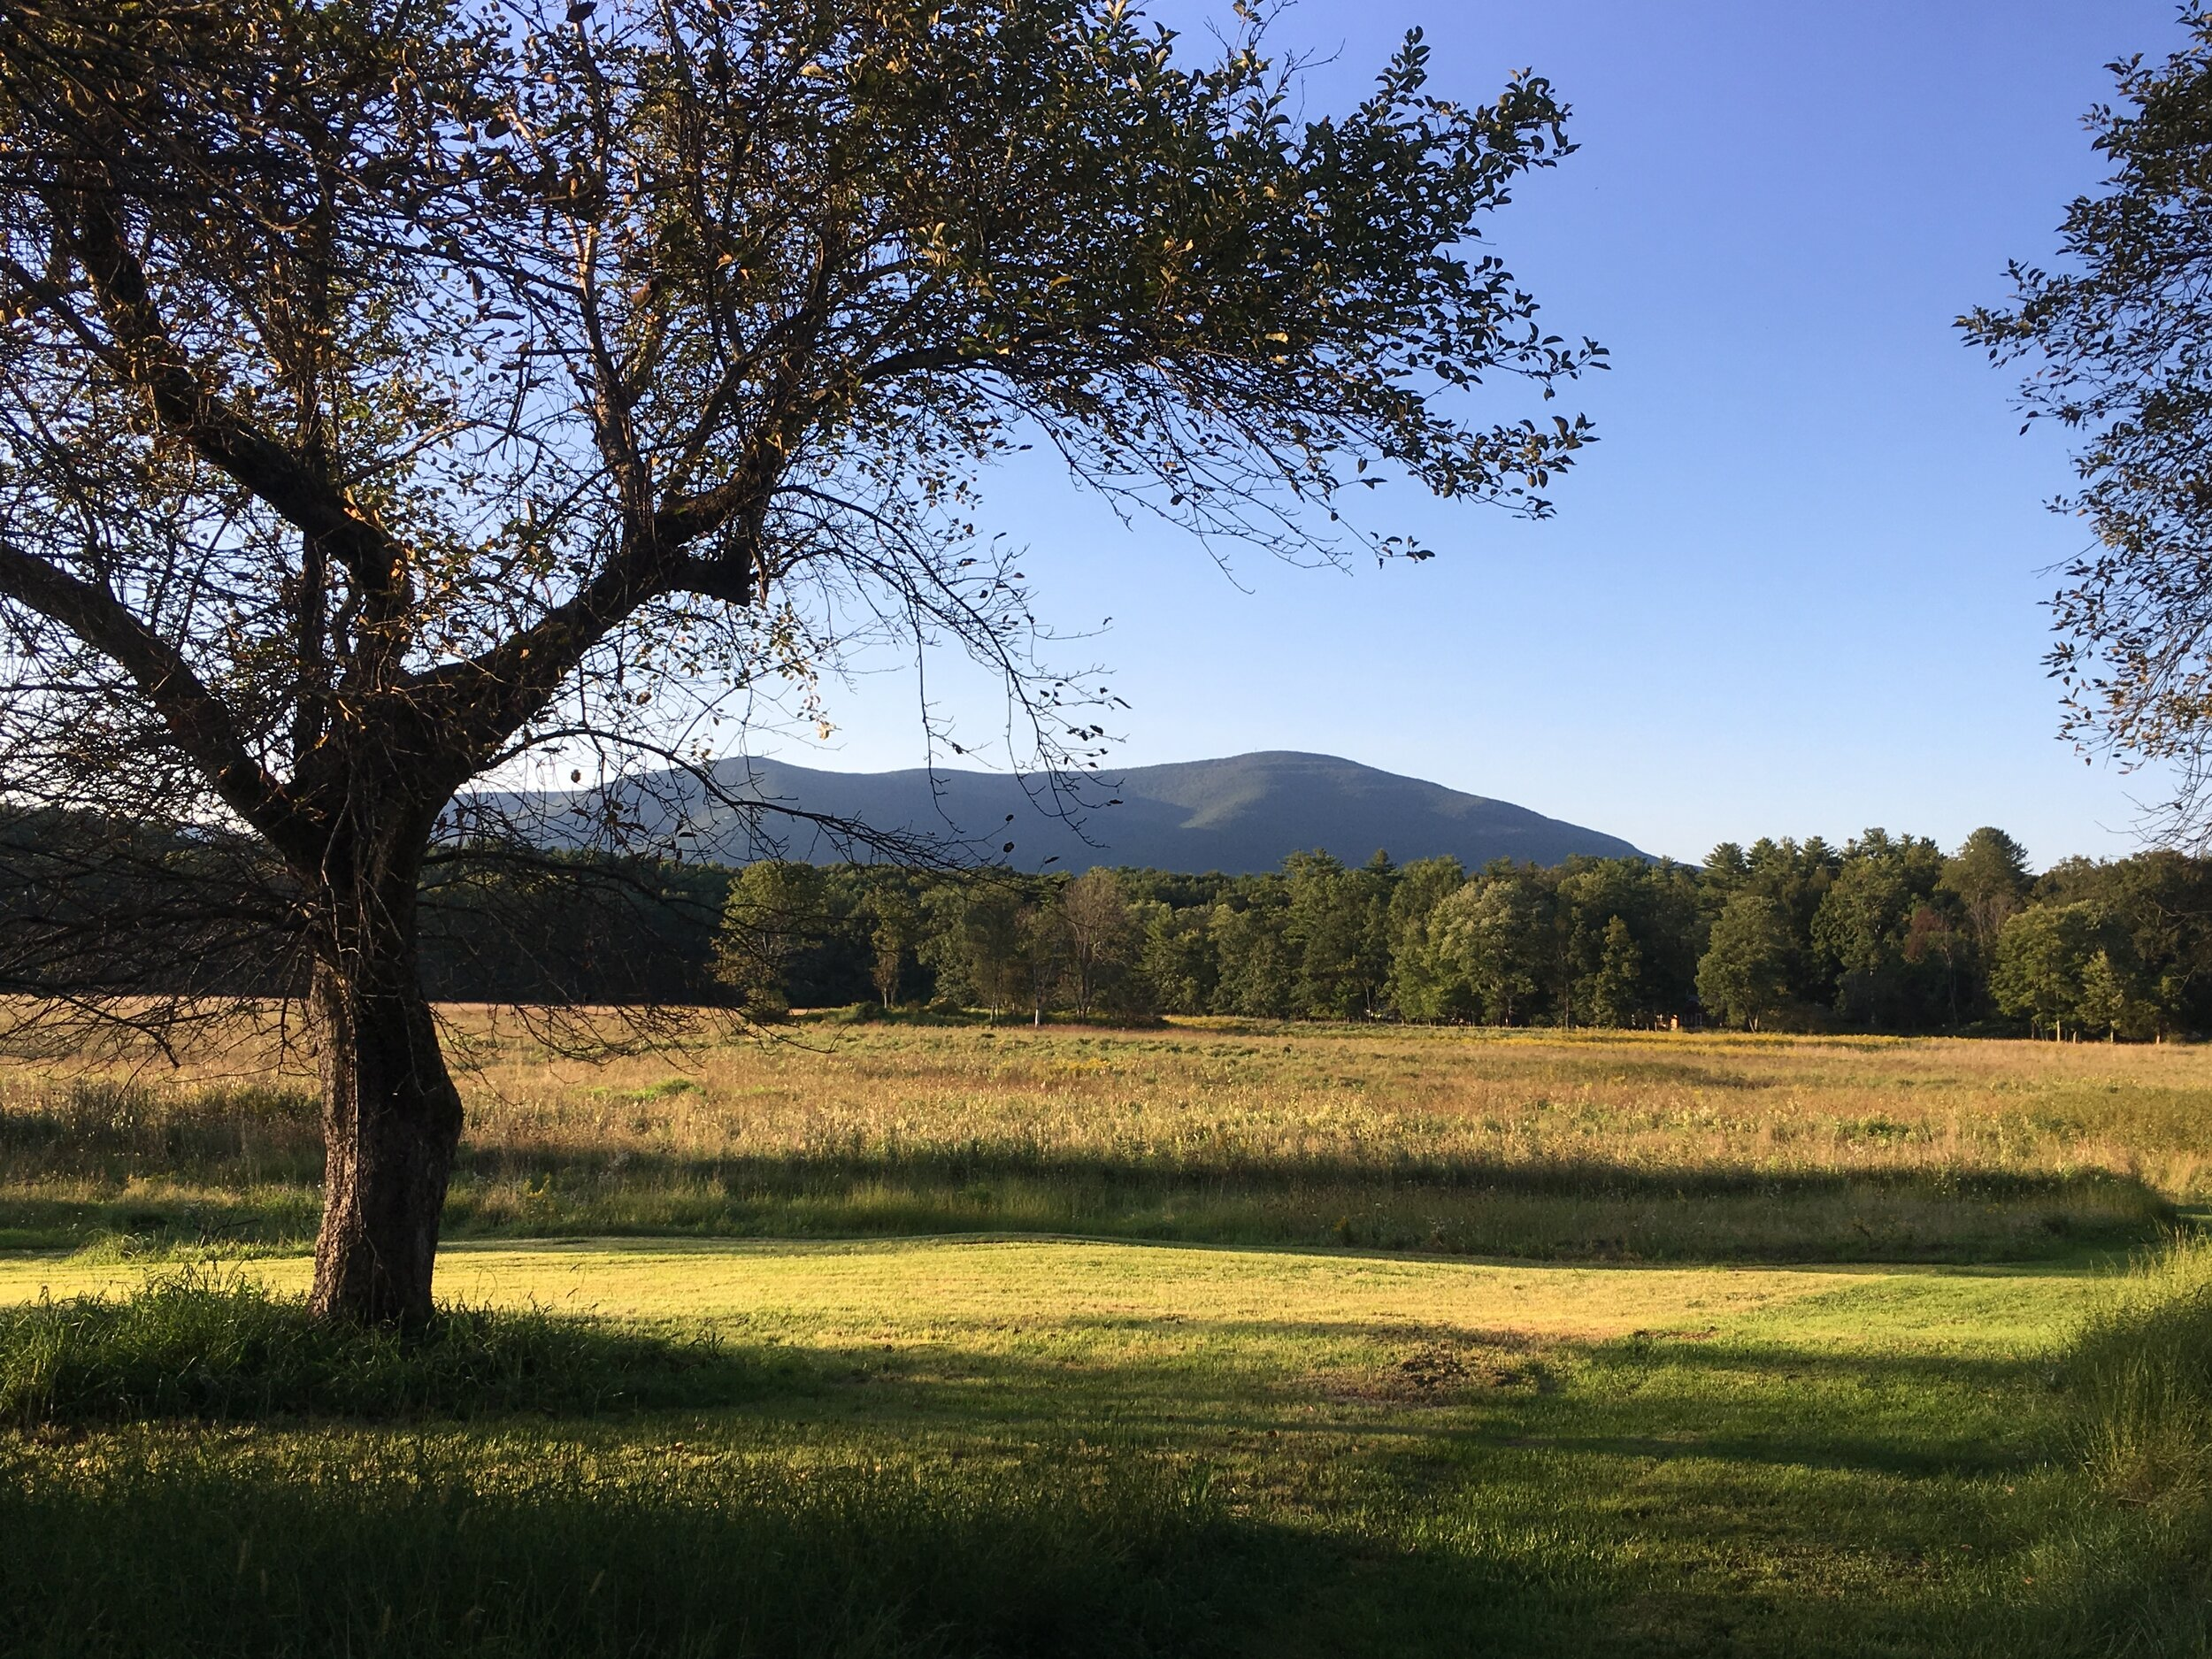 The Thorn Preserve in Woodstock, NY offers great views of Overlook Mountain and some pleasant walking trails.